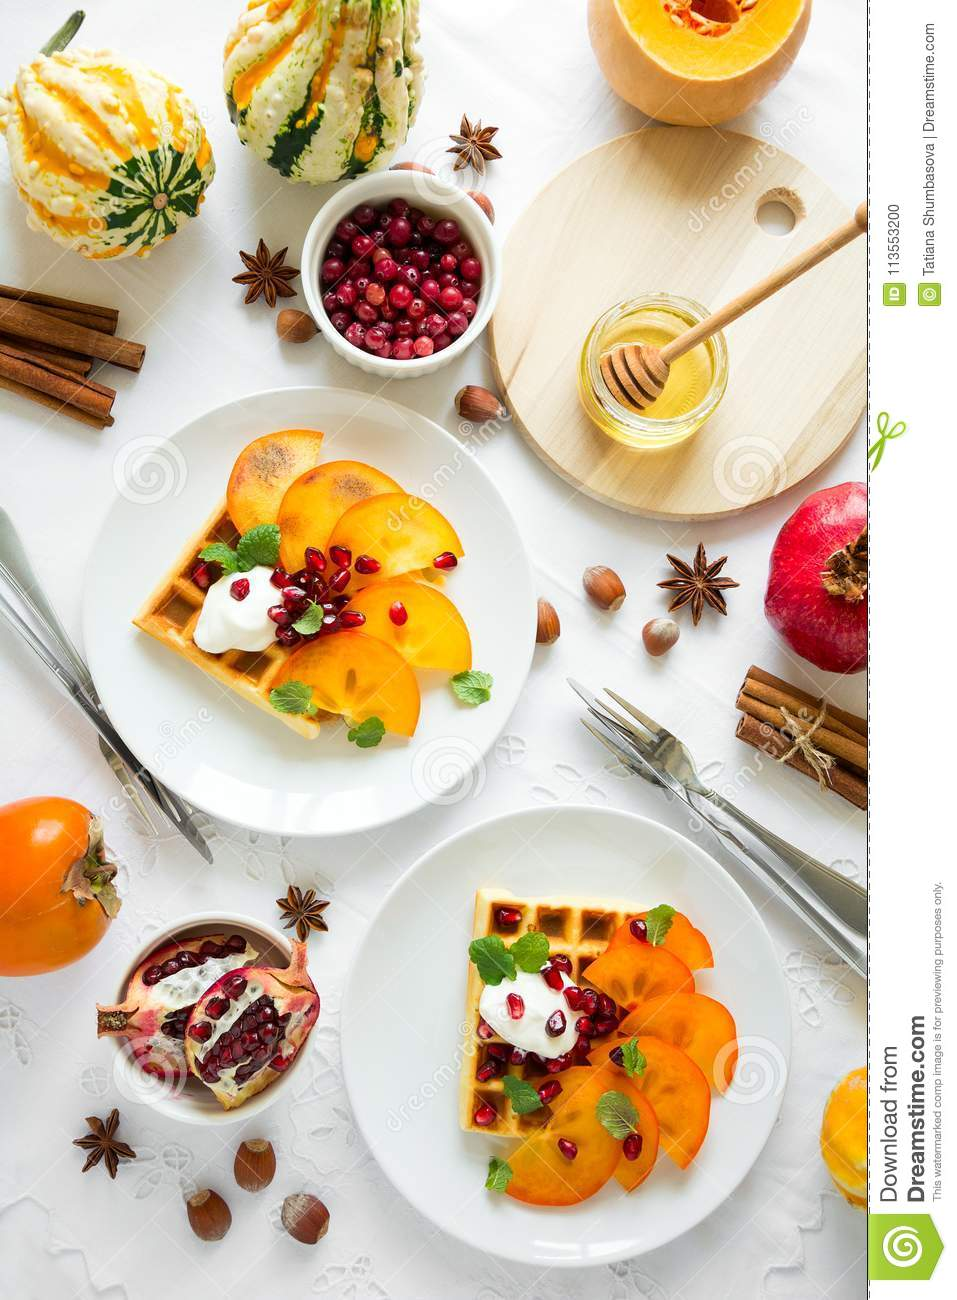 Plates of Belgian waffles with persimmon, pomegranate seeds and sour cream